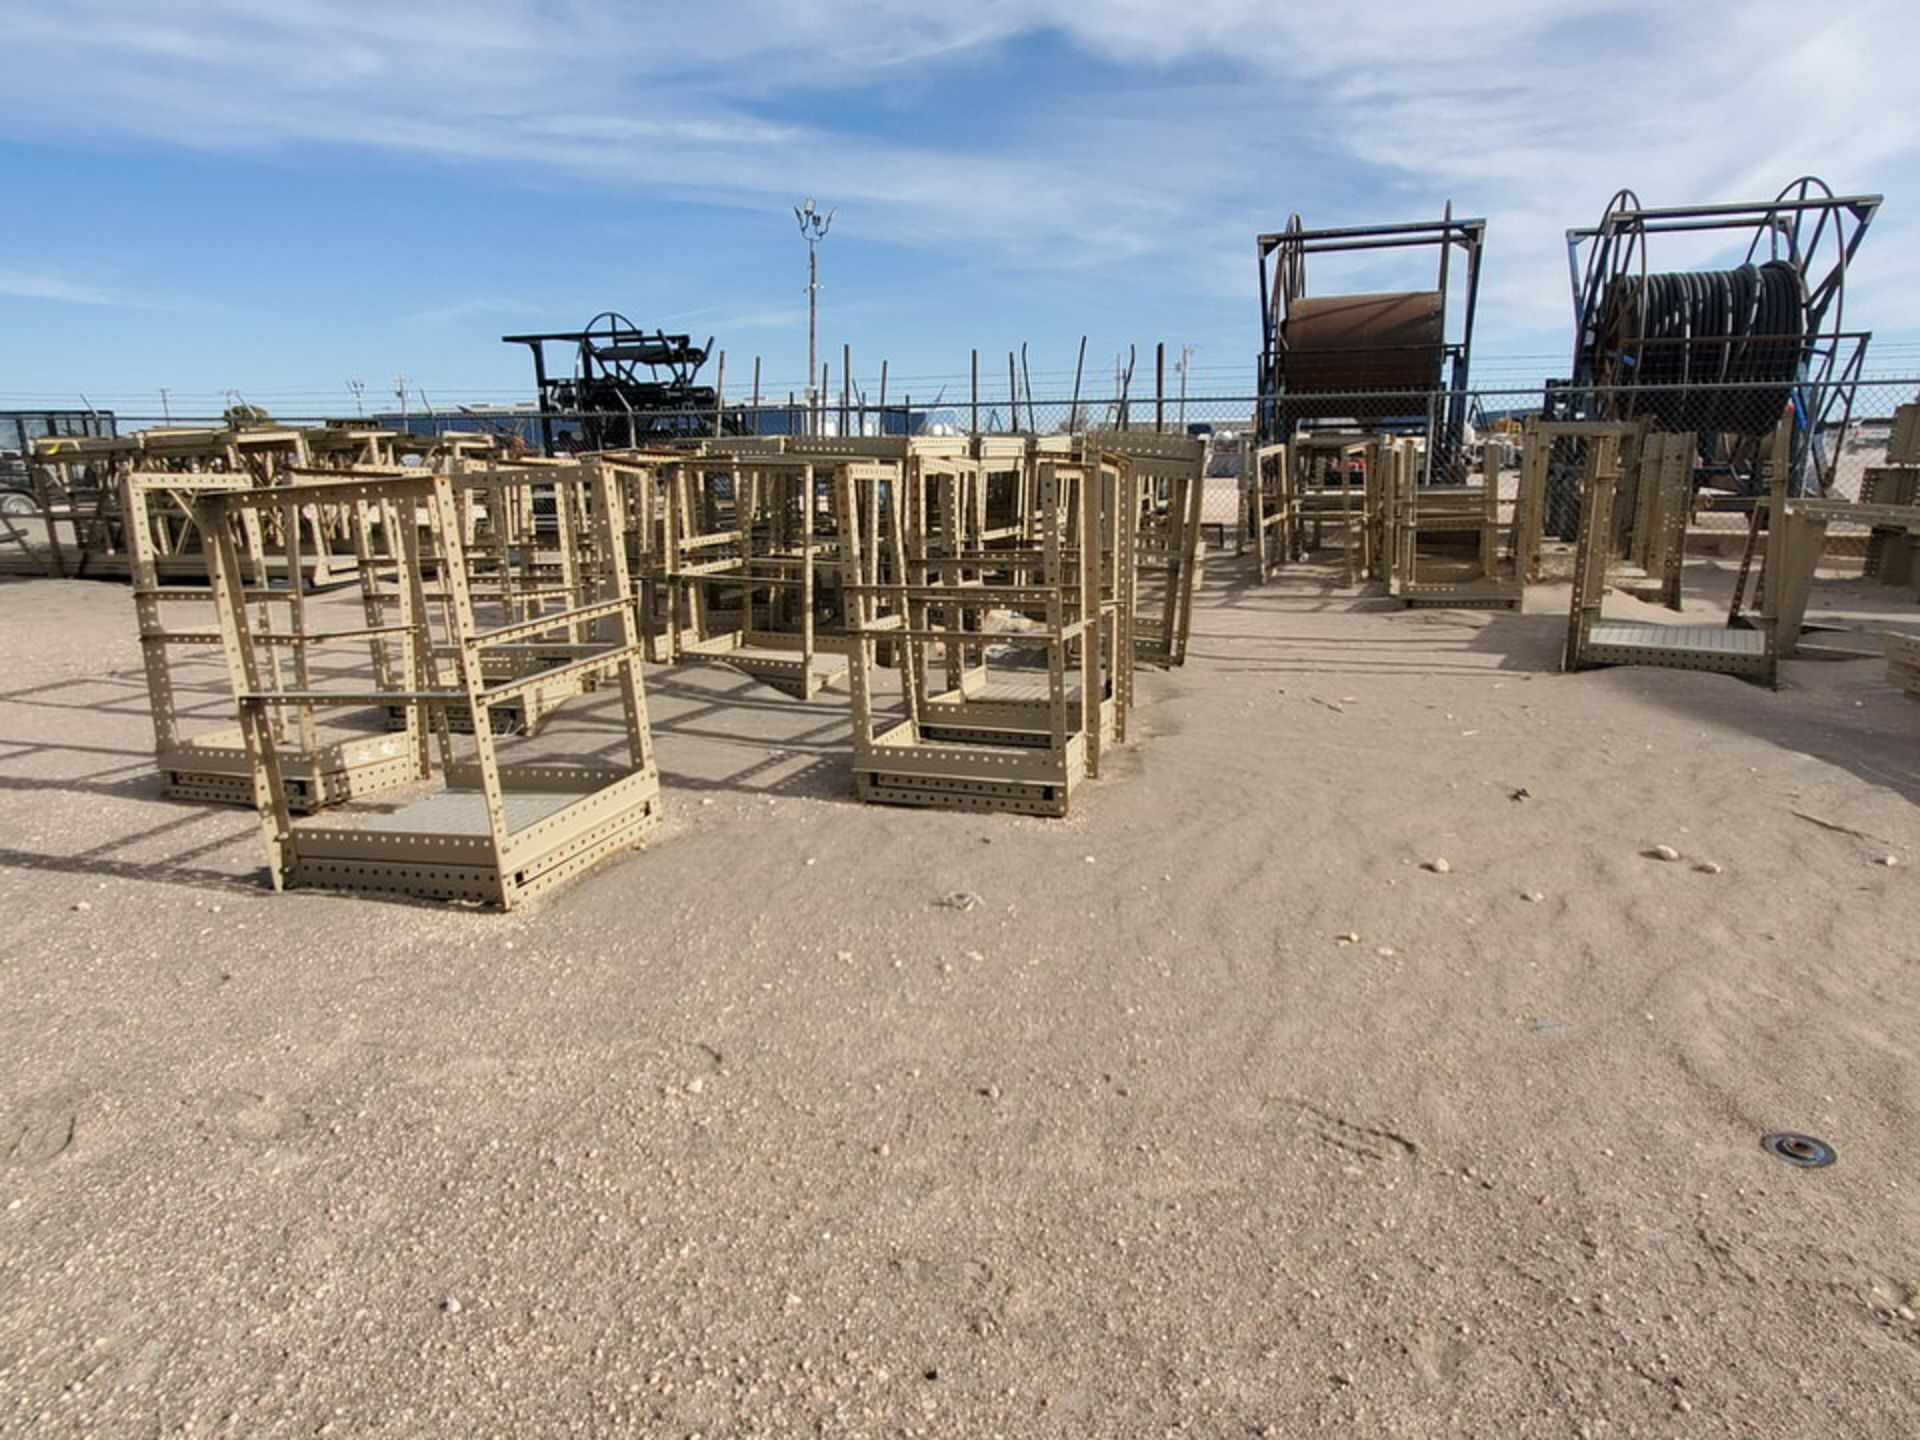 Disassembled Catwalk Sections - Image 4 of 12